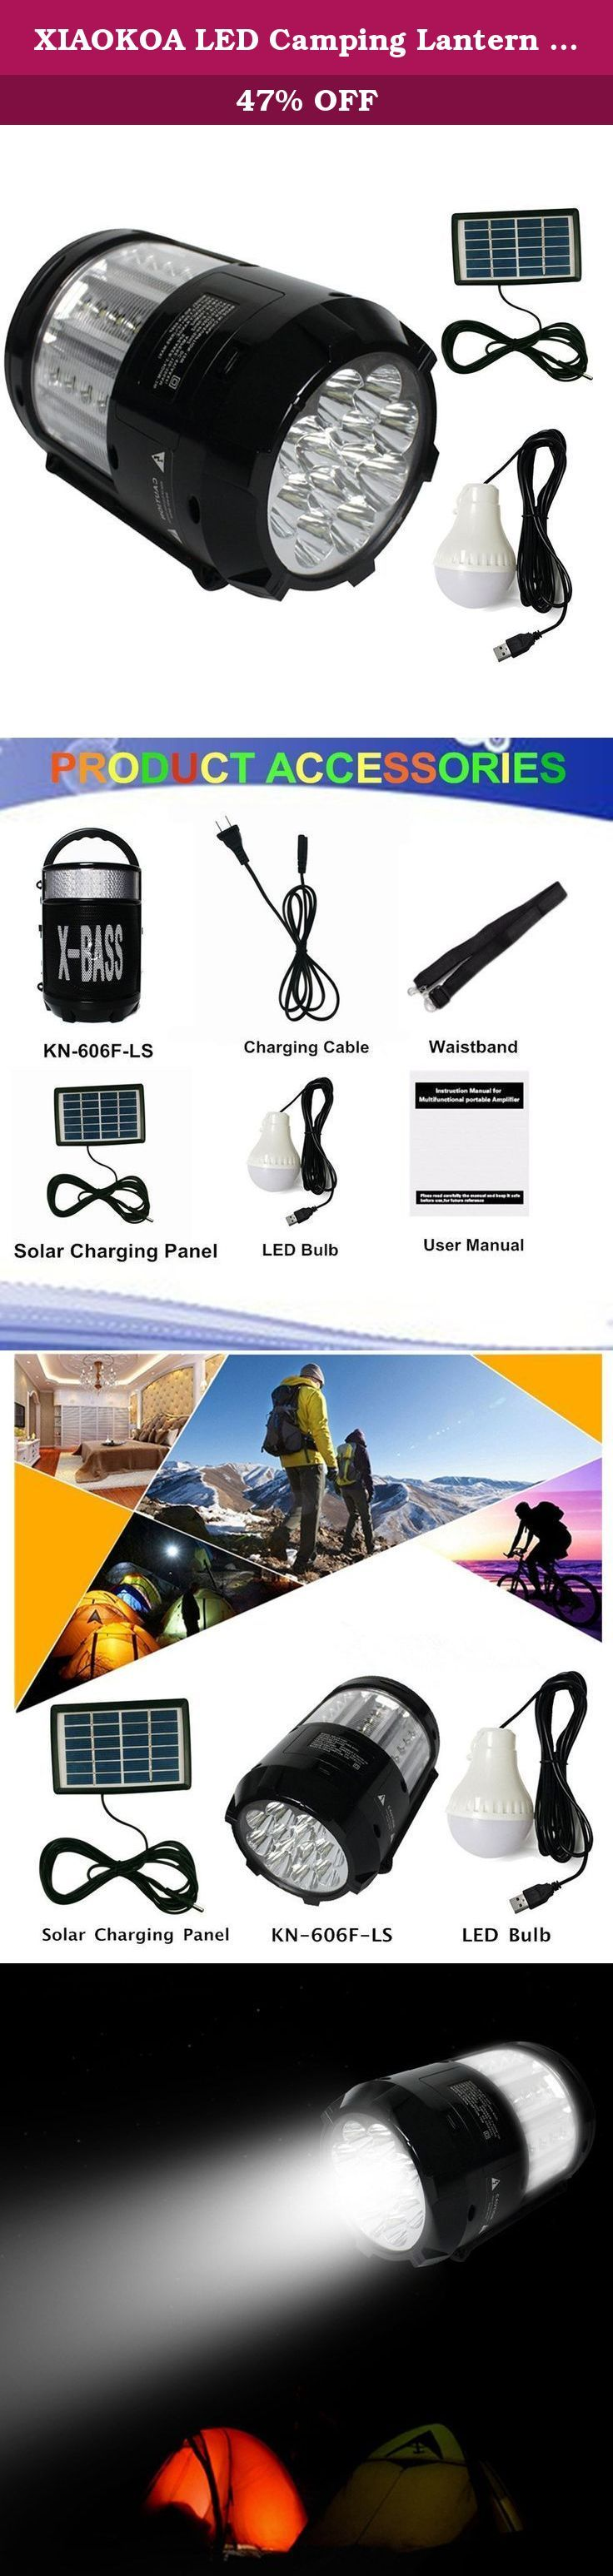 XIAOKOA LED Camping Lantern with FM Radio Music Player Voice Amplifier Cell Phone Charger External LED Bulb, Solar Powered, AC Adapter or 4 x AA Battery(KN-606F-LS). More Product Peatures: -1 Year WARRANTY: At XIAOKOA, we believe in our product. That's why we back them all with 1 year warranty. -Using and charging at same time is available. -One-key switch to change power source to use whichever you want. -One-key searching FM station and save stations automatically. -Music player(support...